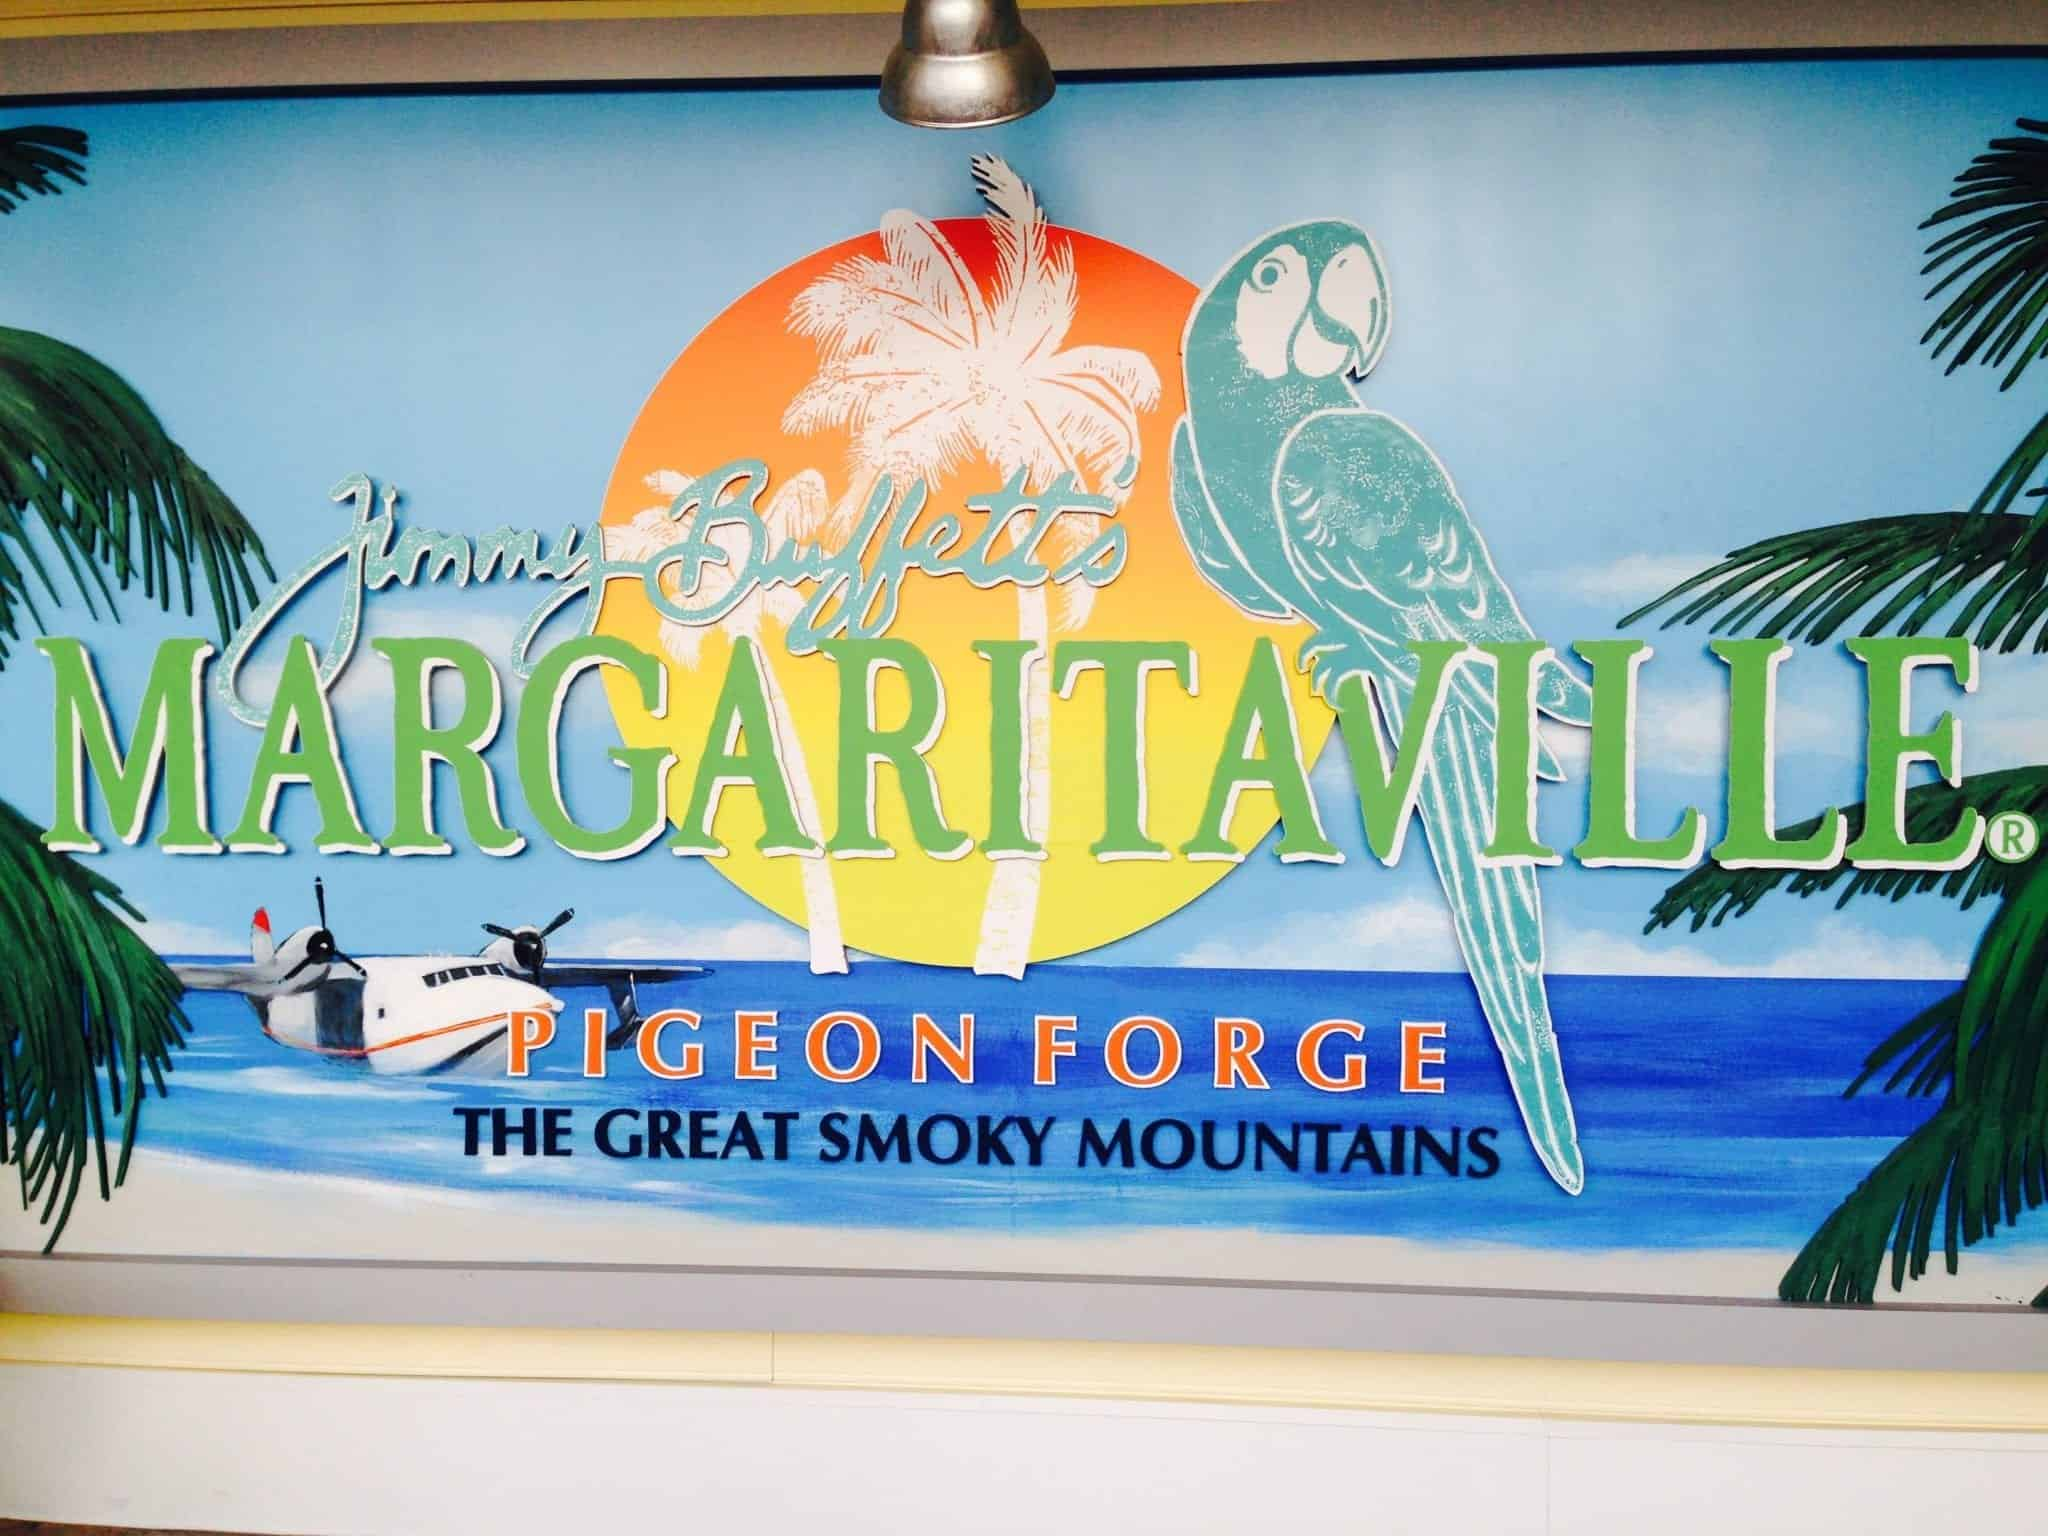 Margaritaville restaurant sign in Pigeon Forge